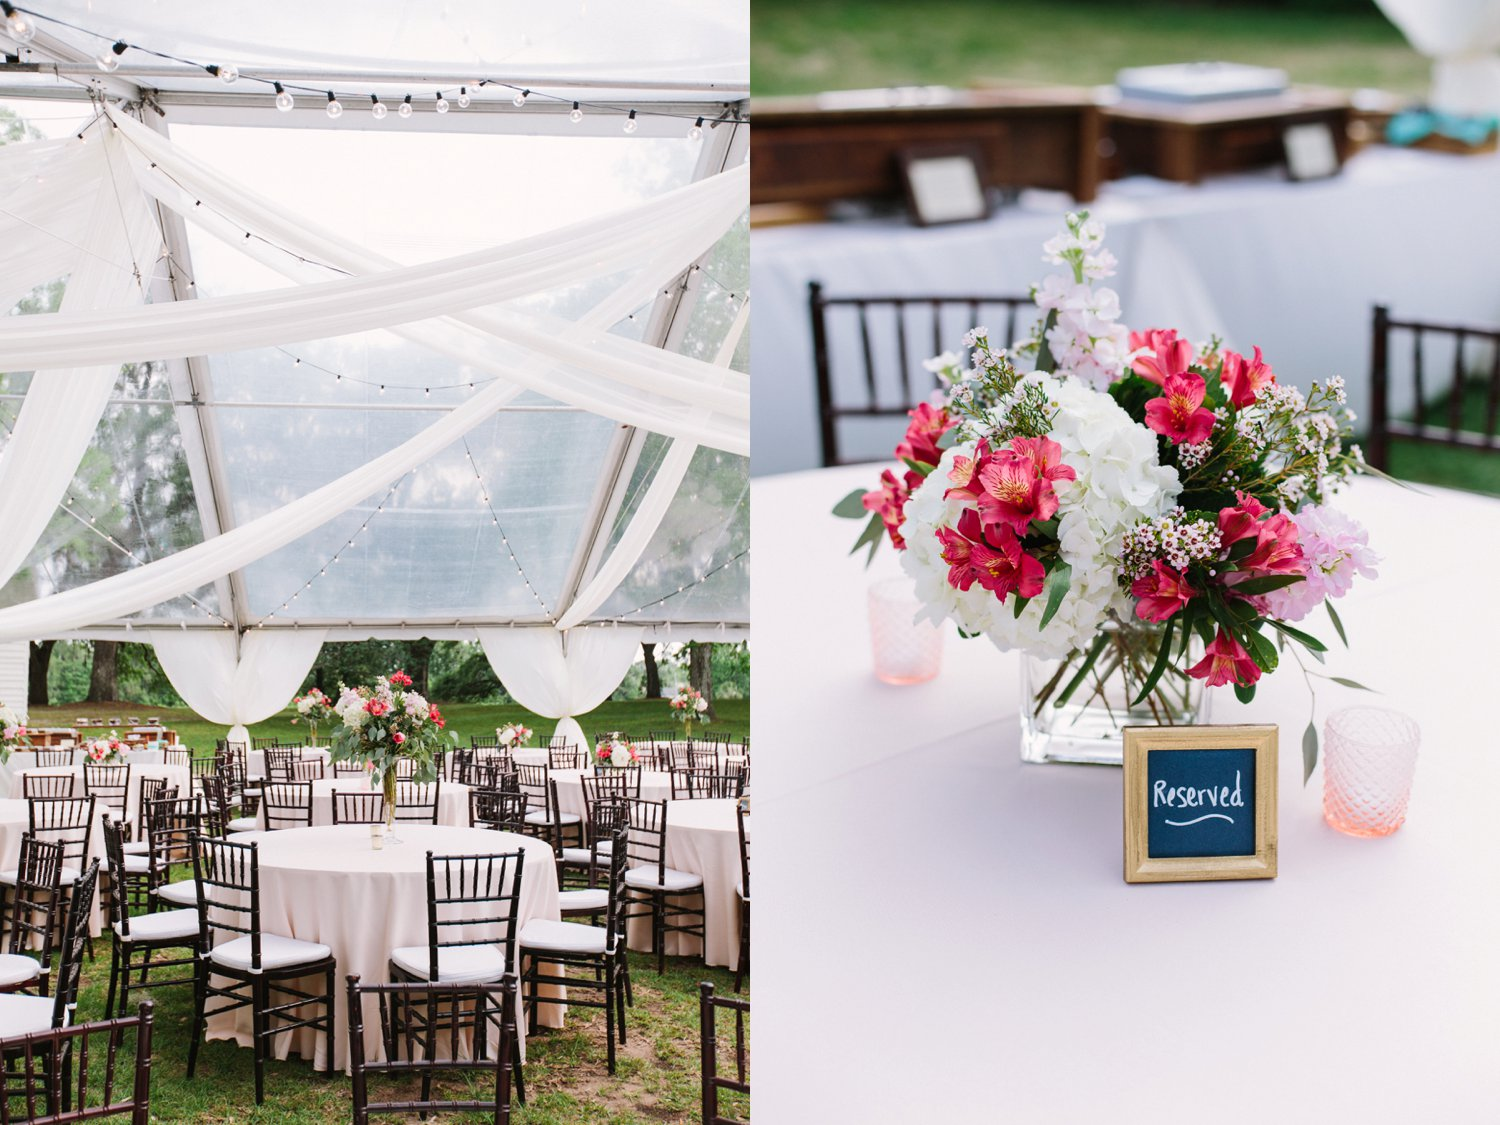 Lindsey_A_Miller_Photography_mcleod_plantation_wedding_charleston_south_carolina_clear_tent_spring_mod_events_061.jpg